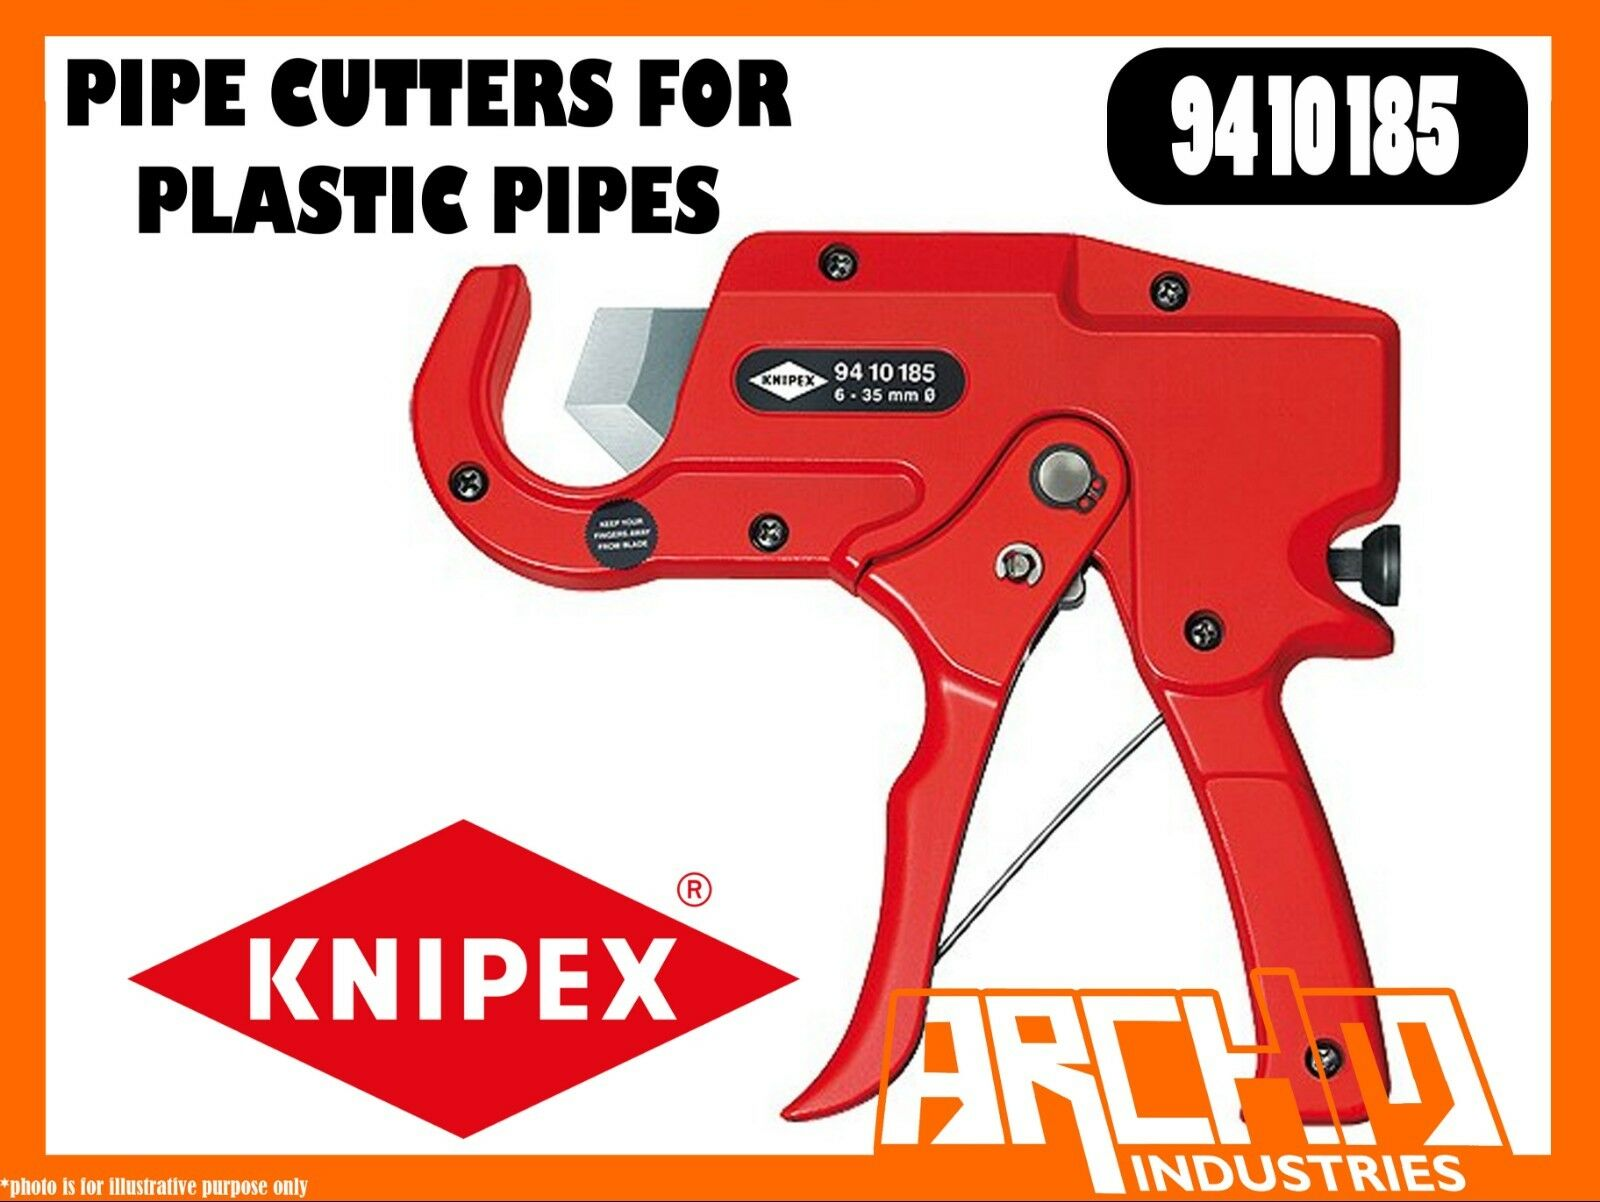 KNIPEX 9410185 - PIPE CUTTERS FOR PLASTIC PIPES - 185MM - CLEAN CUTTING BLADE